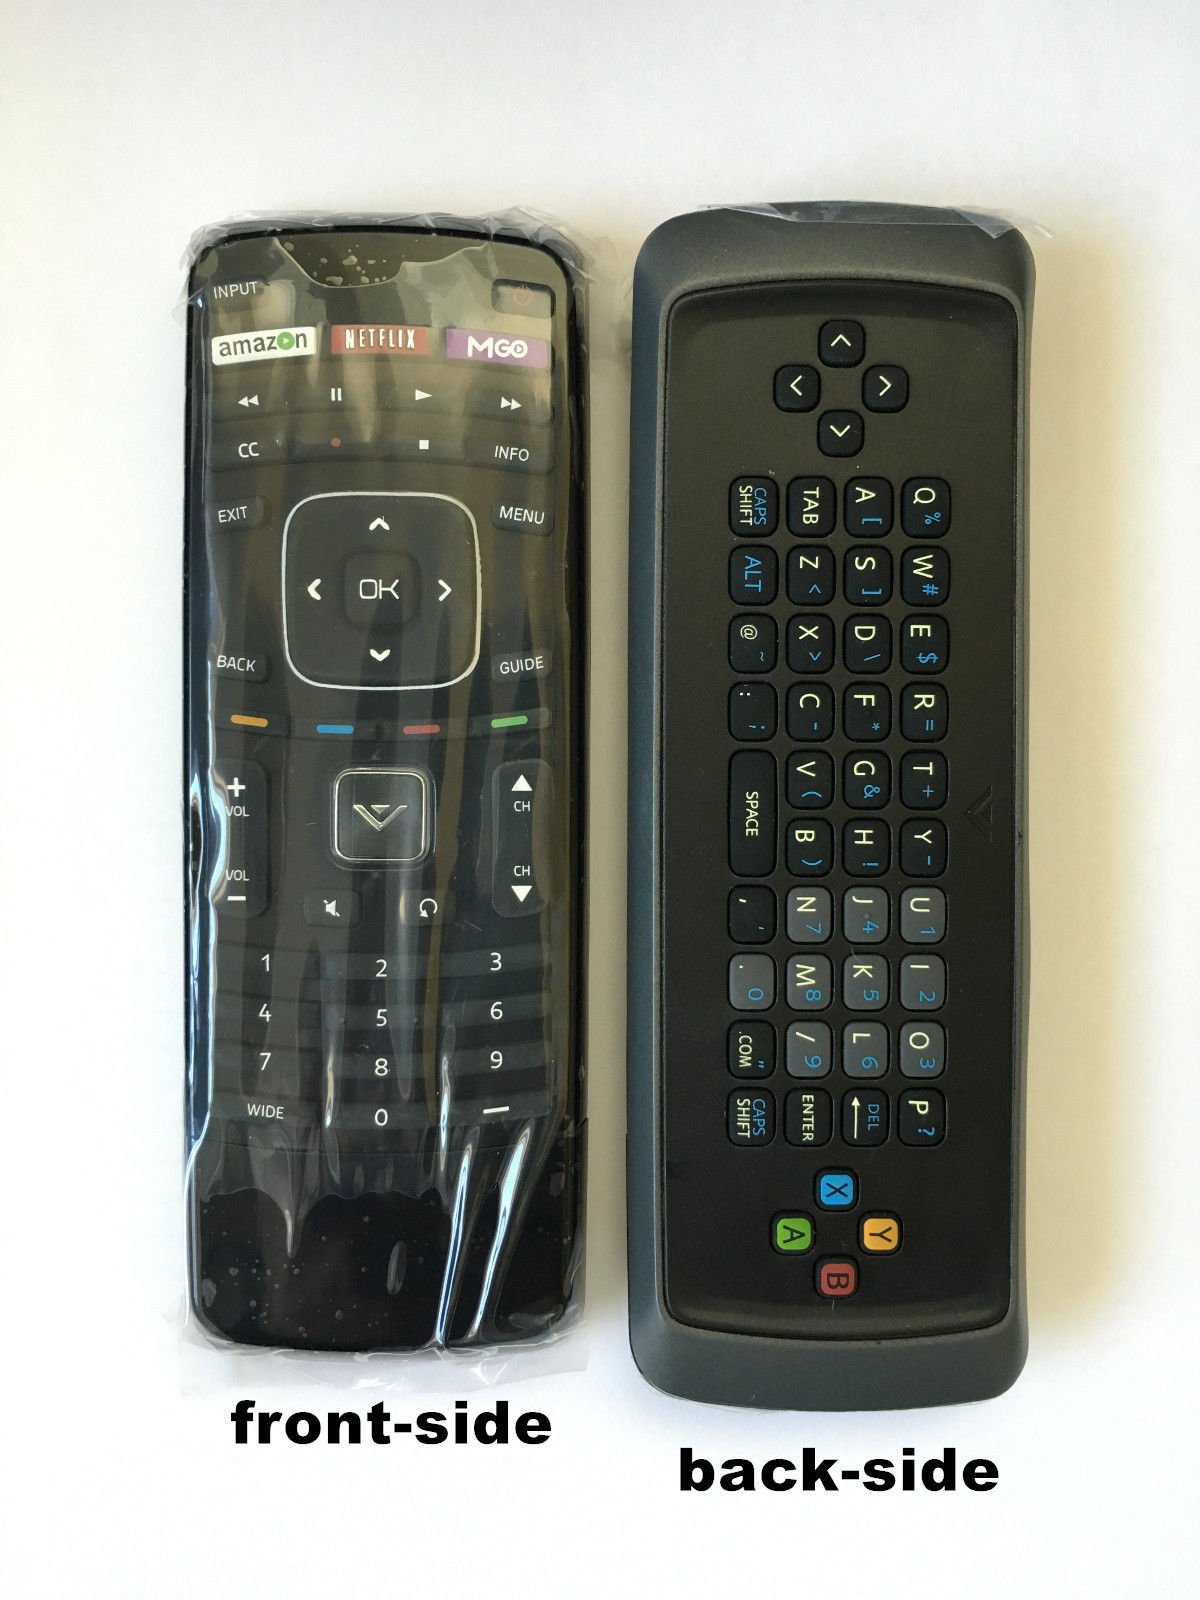 Compatible Multi funtions New VIZIO XRT302 (XRT112 keyboard version) Replaced Smart TV Remote with M-GO